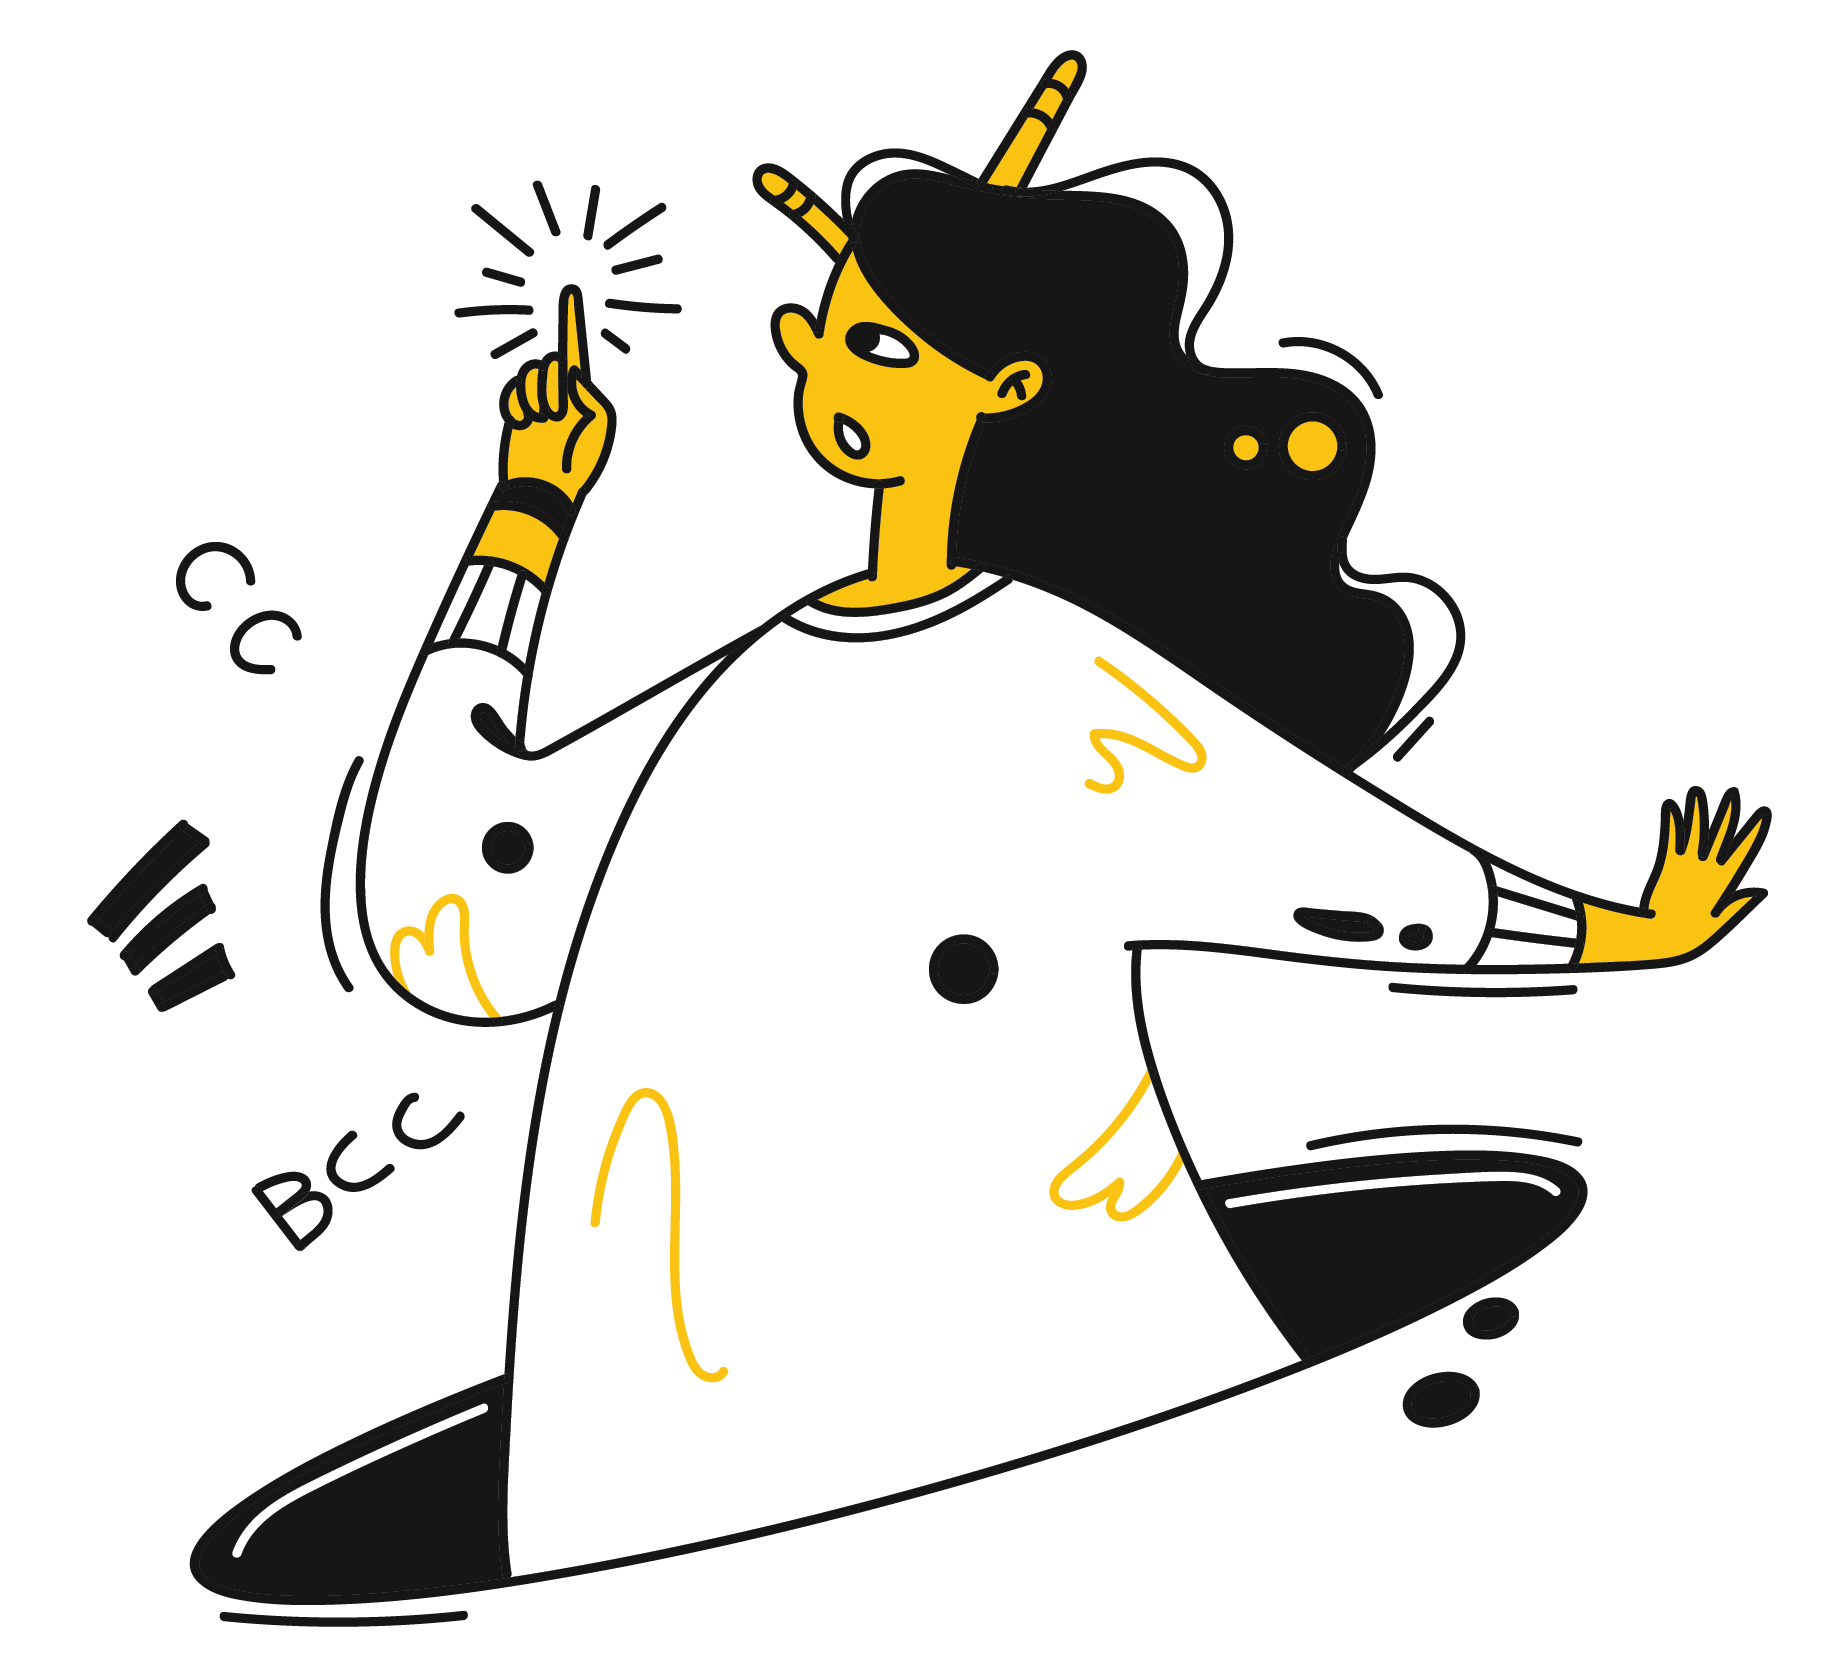 A woman points to upward with her finger implying that she has an idea.